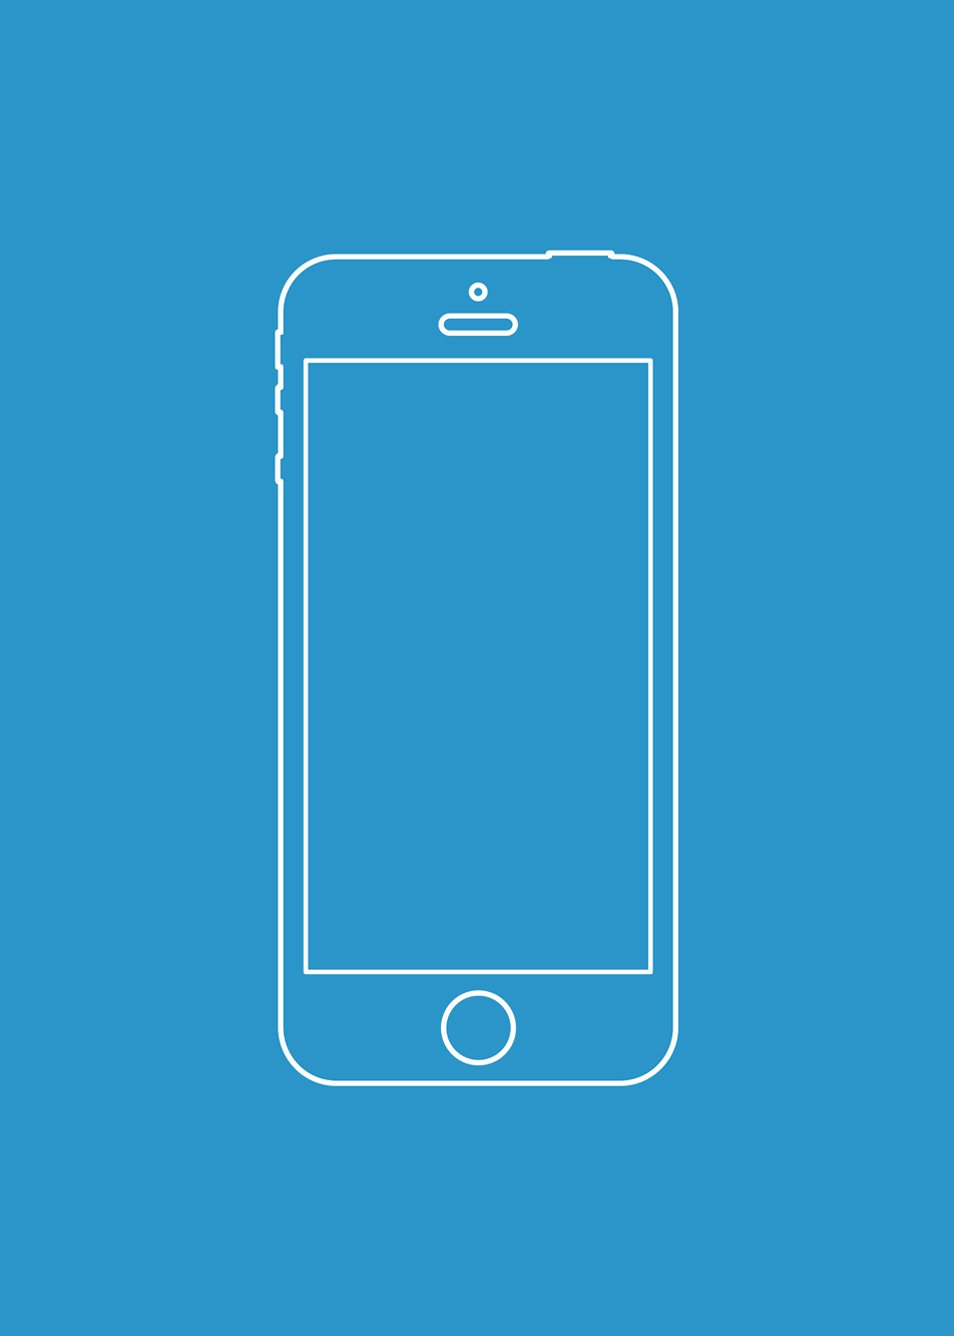 iPhone Wireframe Vector Template